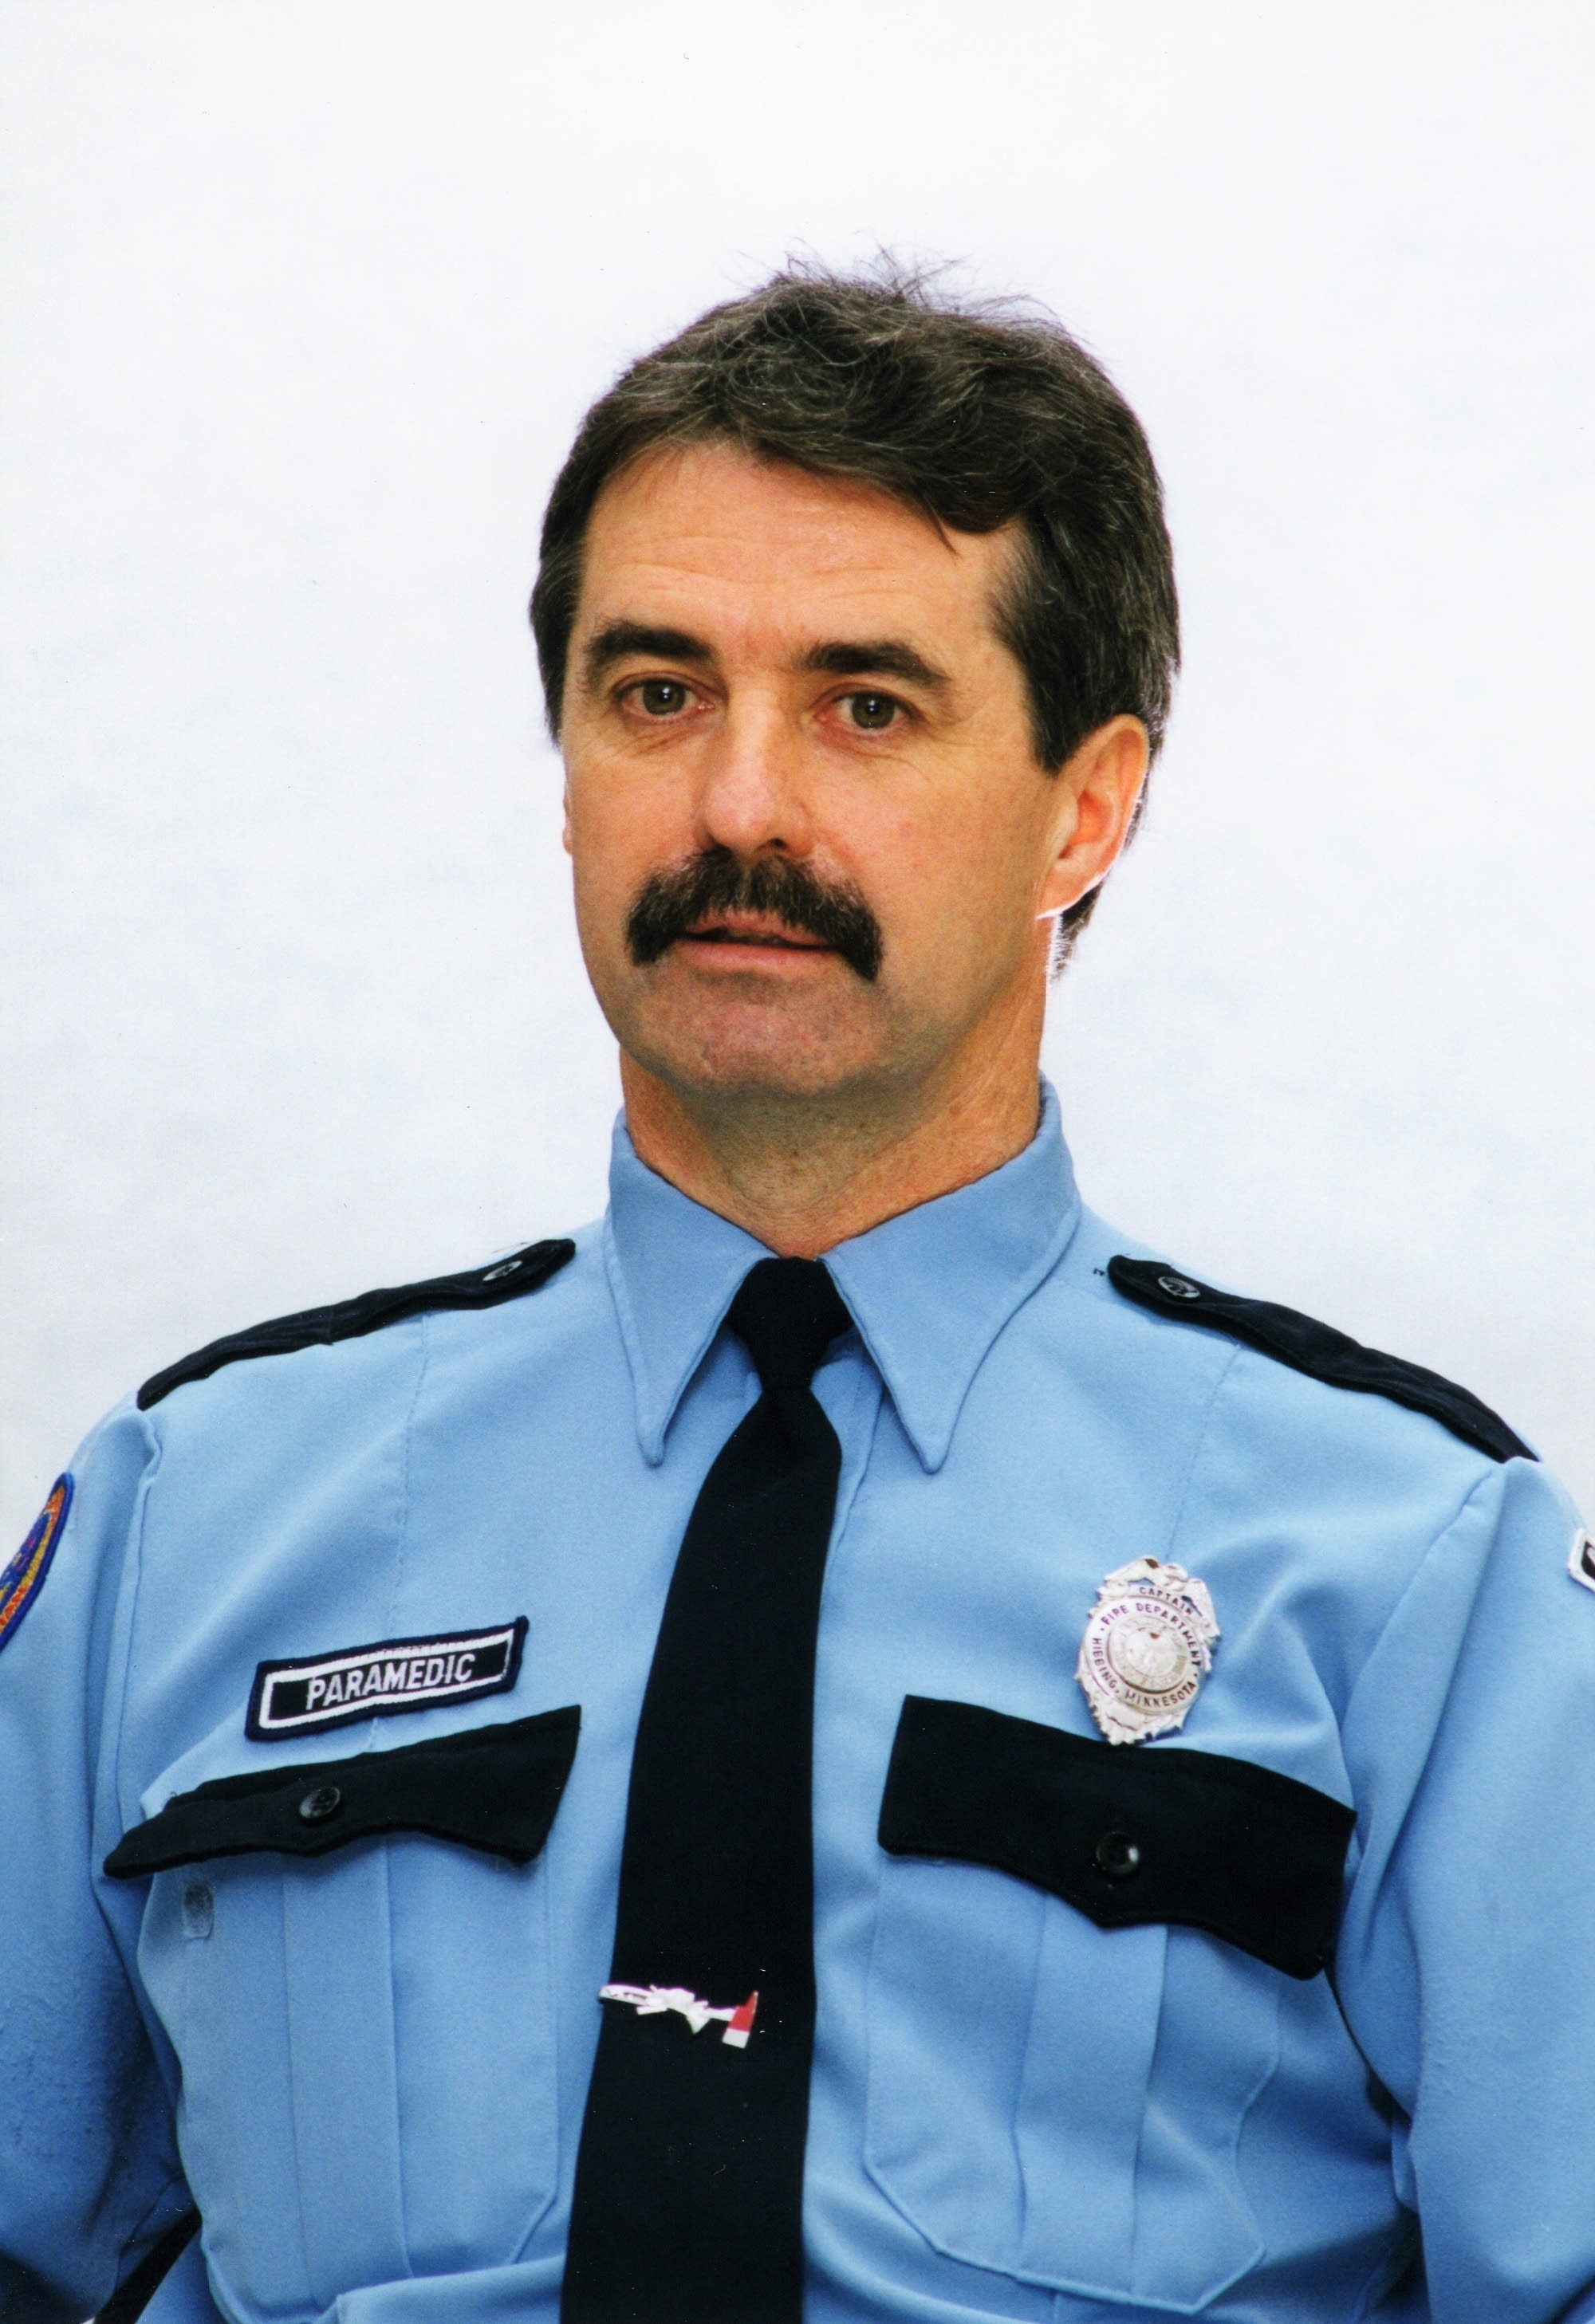 Retired Hibbing fire captain Steven J. Gillitzer